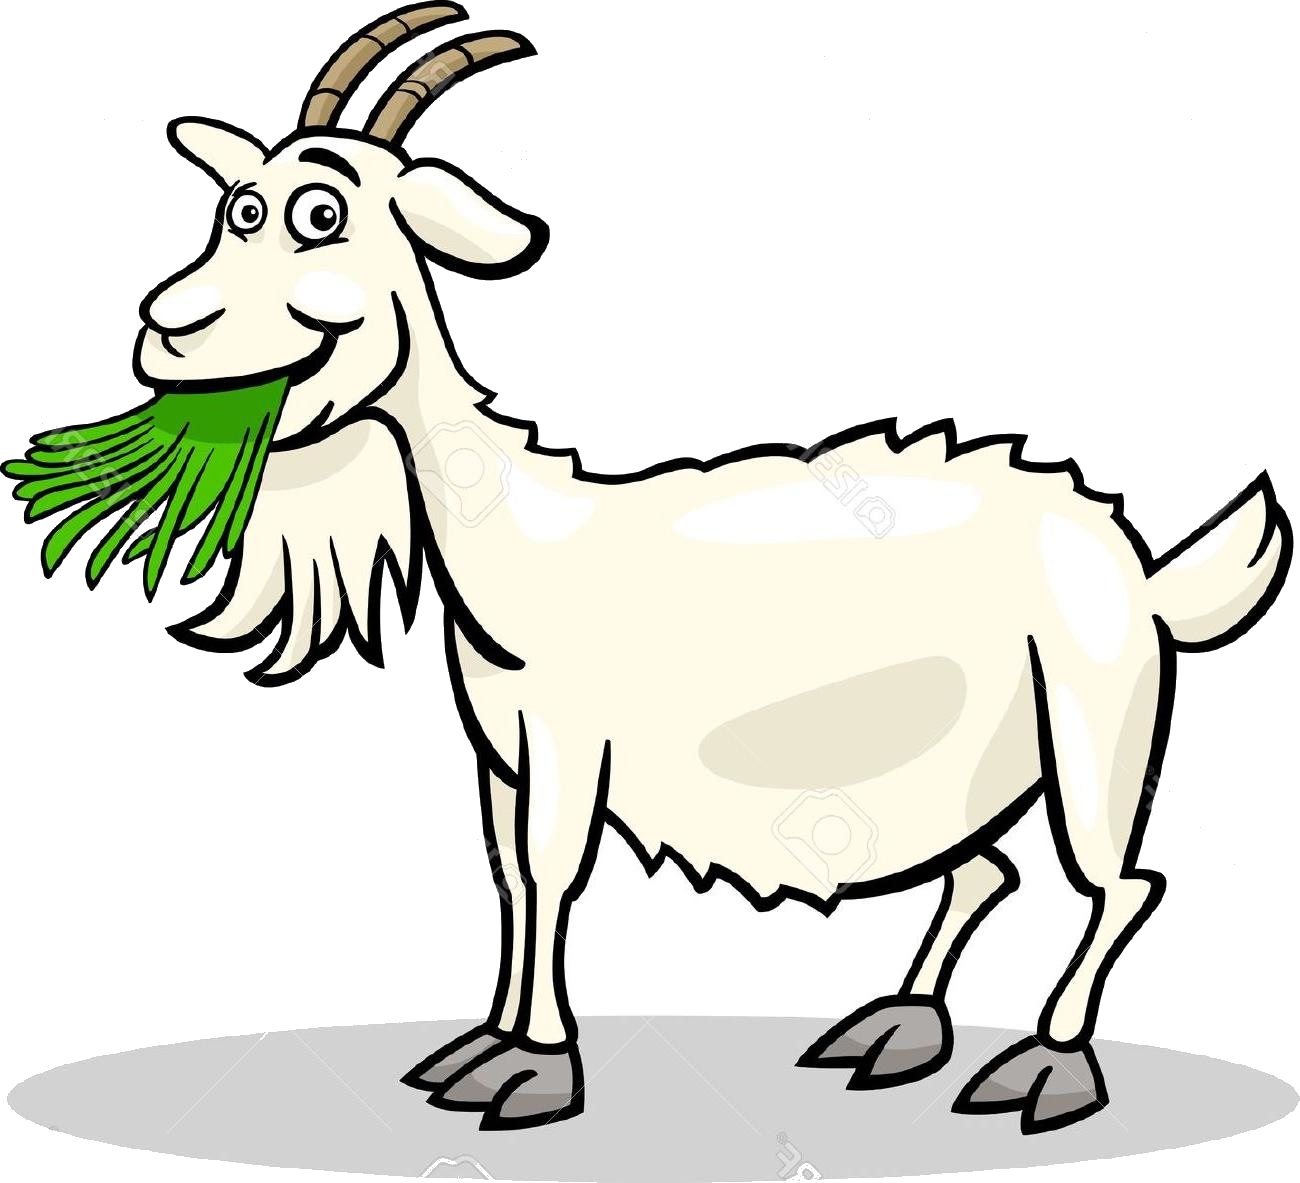 Goat clipart part, Goat part Transparent FREE for download ...